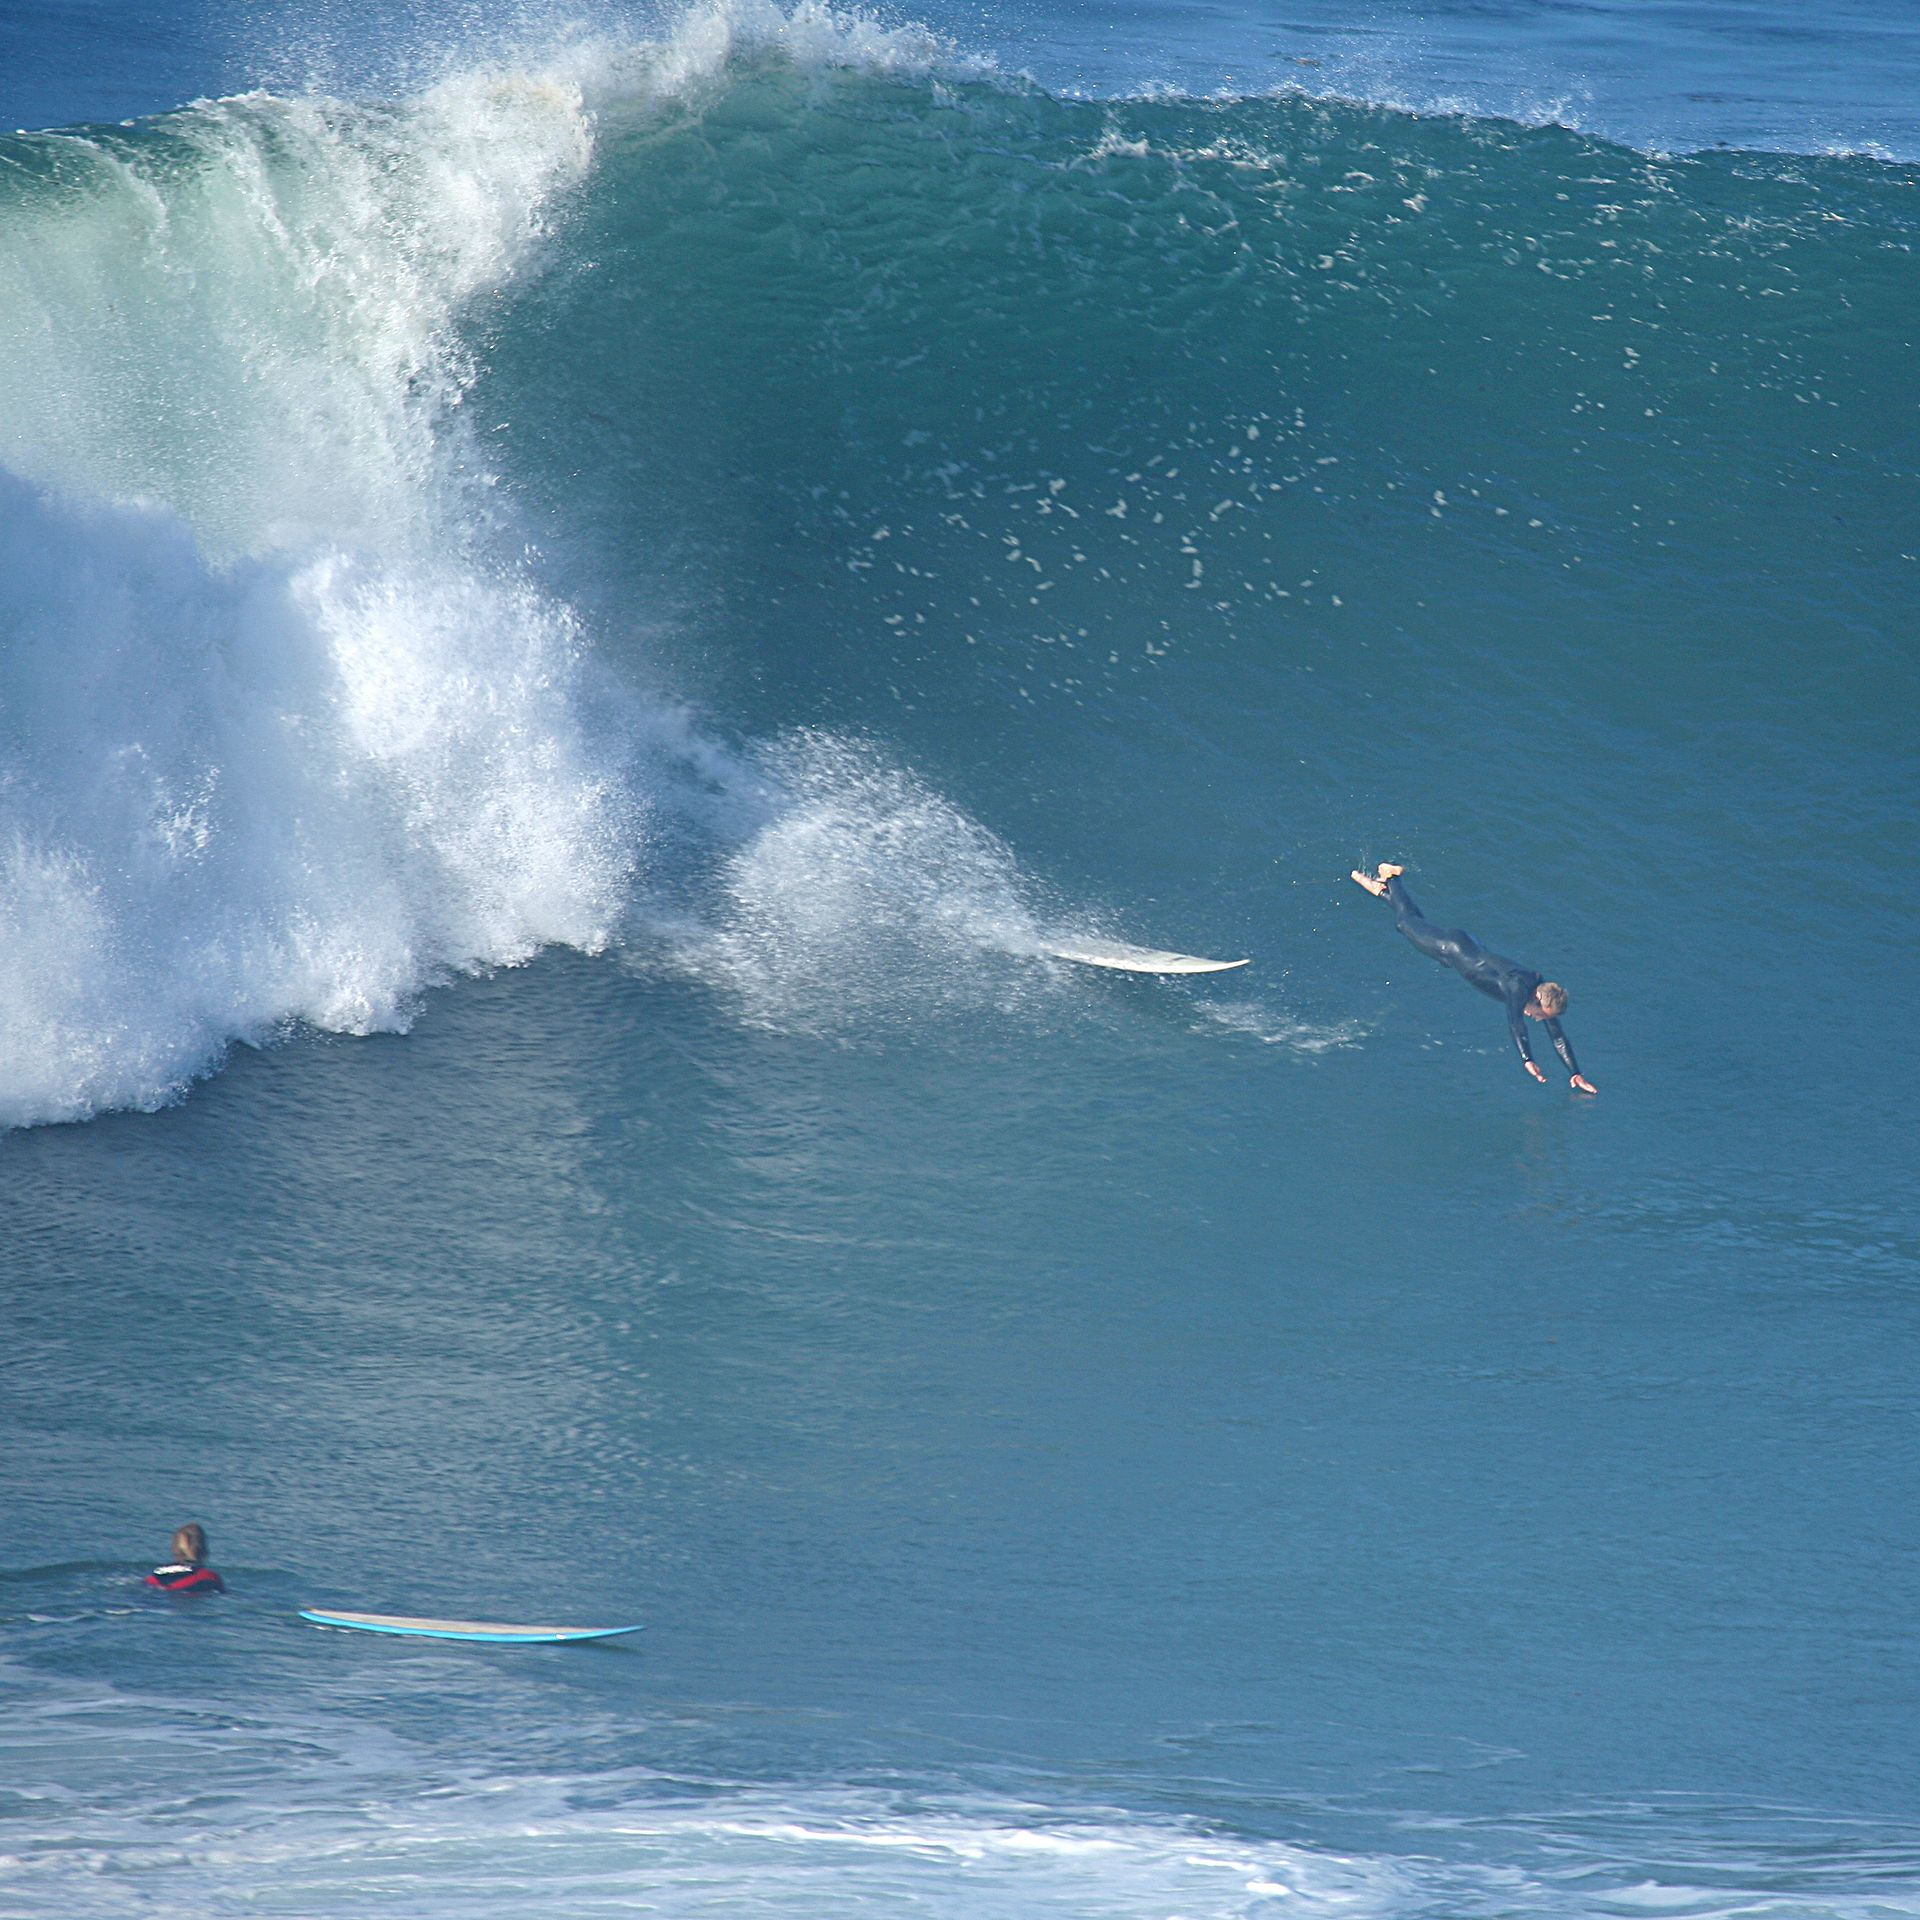 West Coast Wipeout